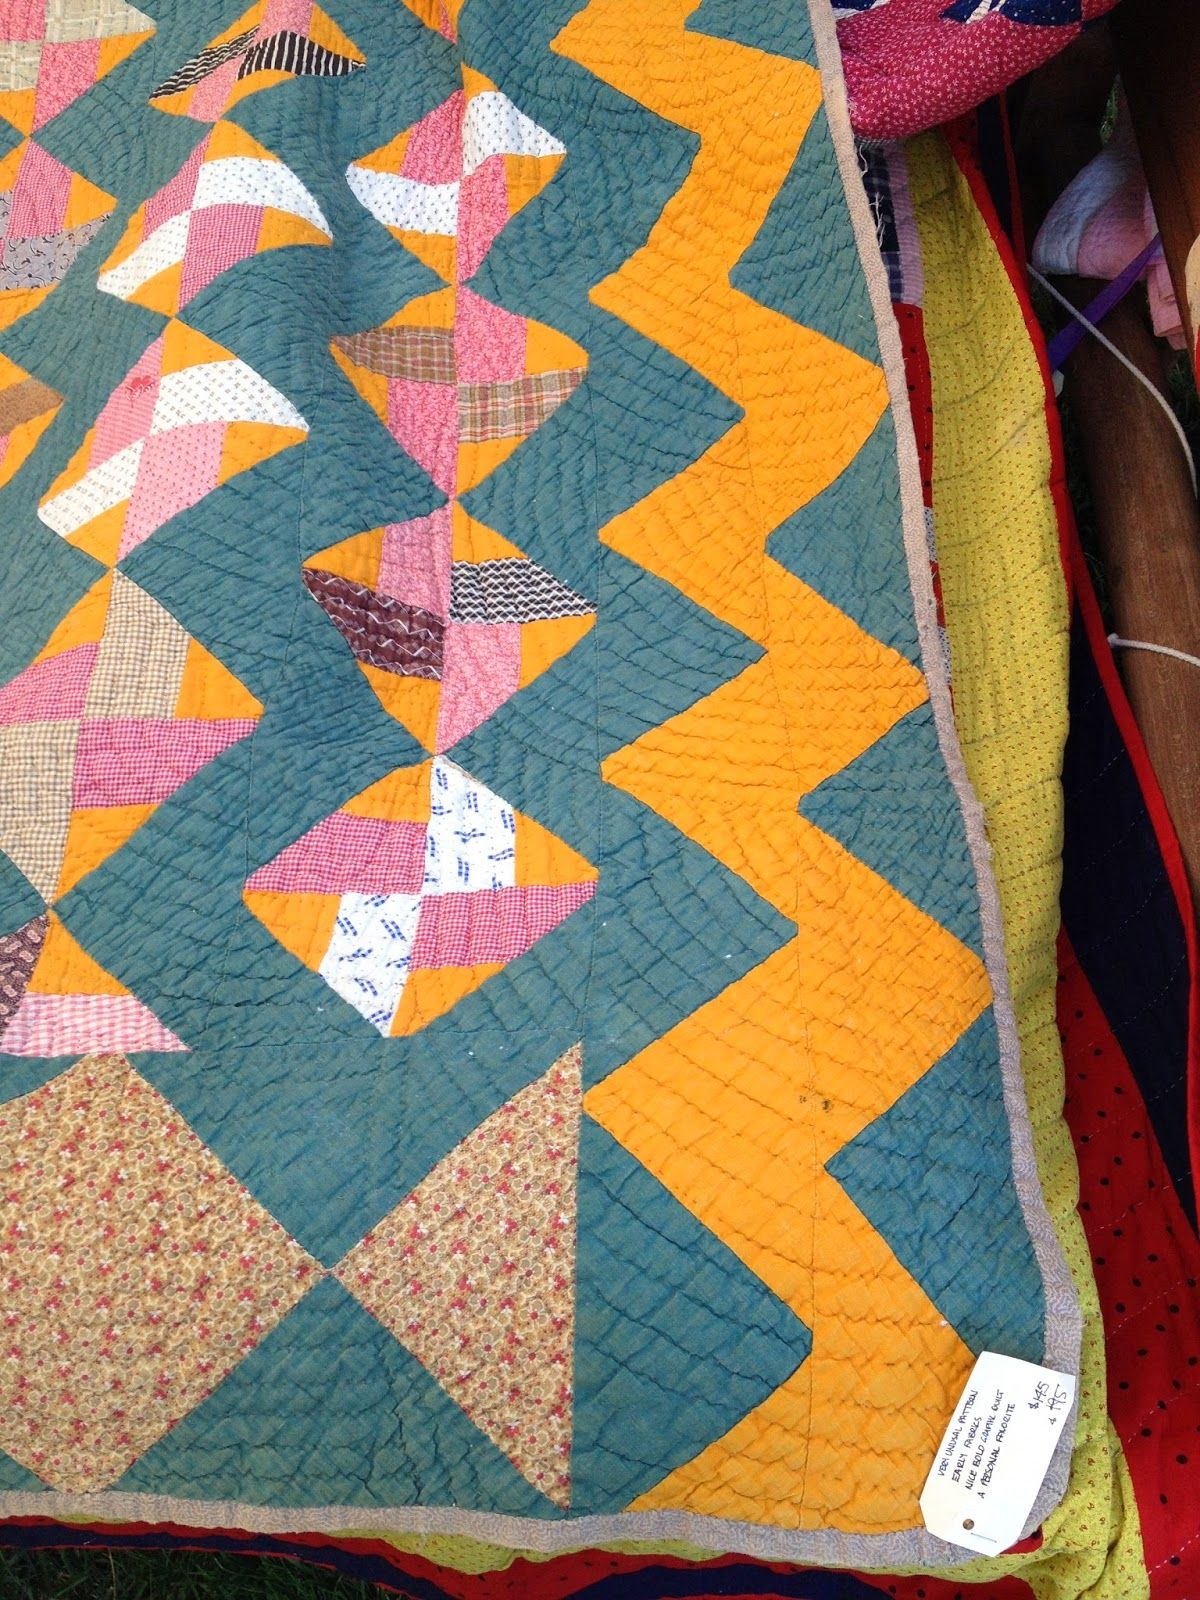 Humble Quilts: In No Particular Order | Quilts & Quilty ... : humble quilts - Adamdwight.com